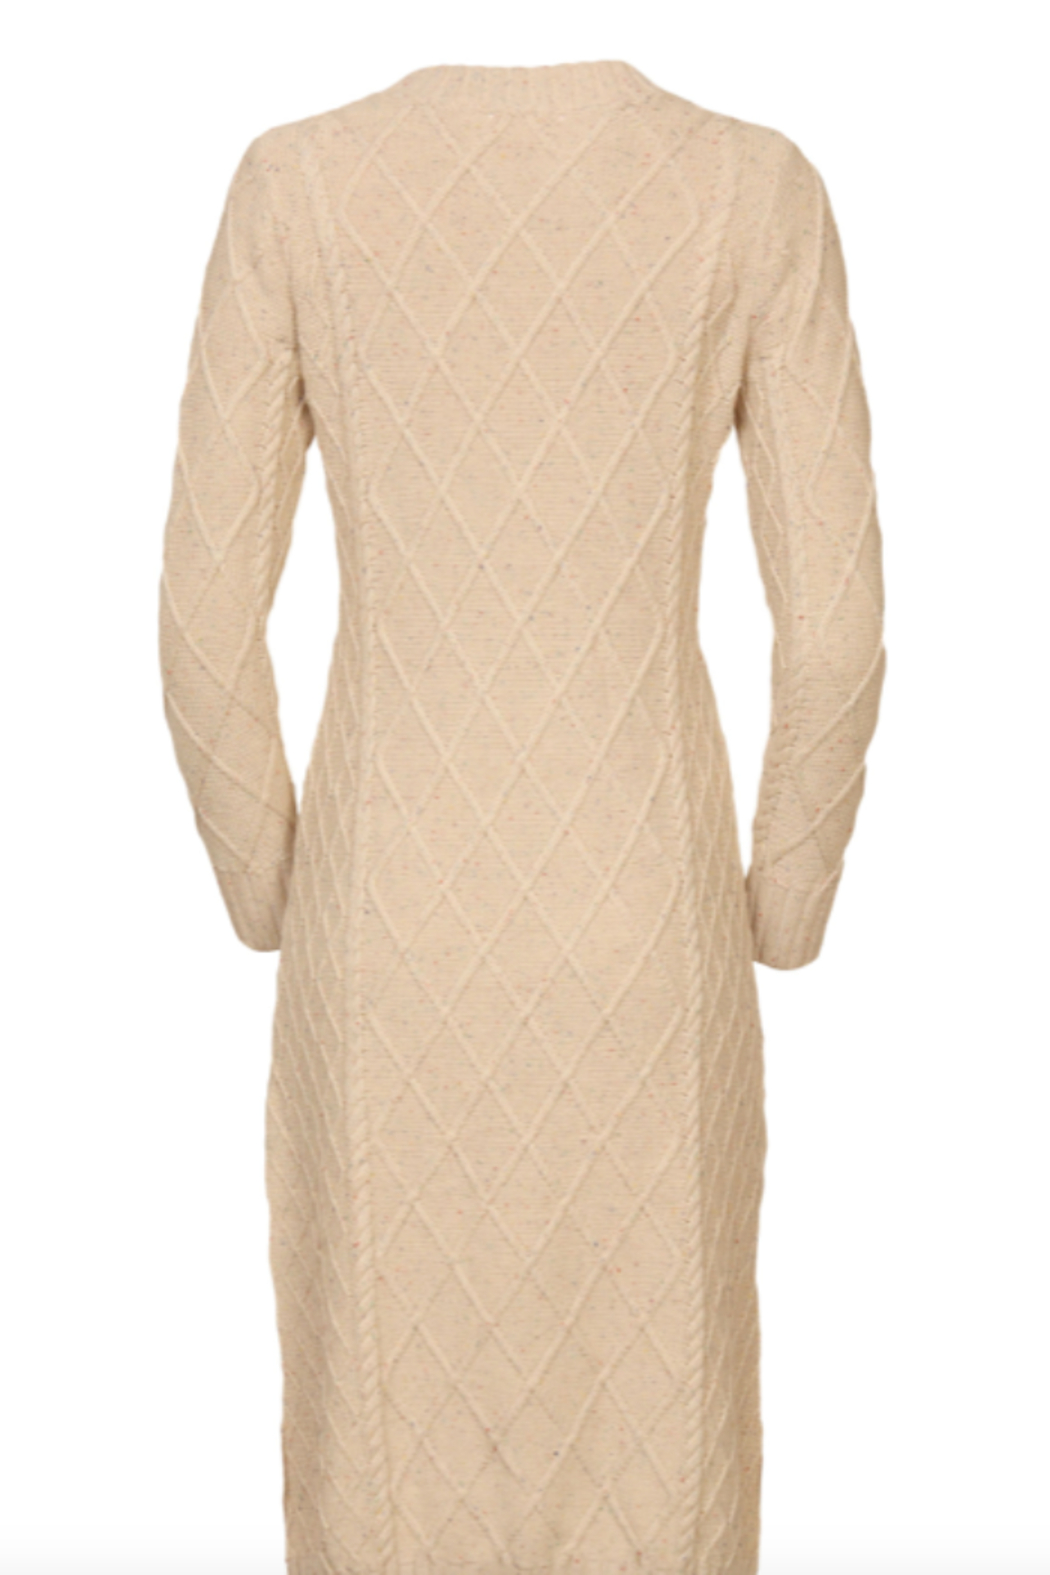 Line & Dot Molly Cable Knit Dress - Side Cropped Image